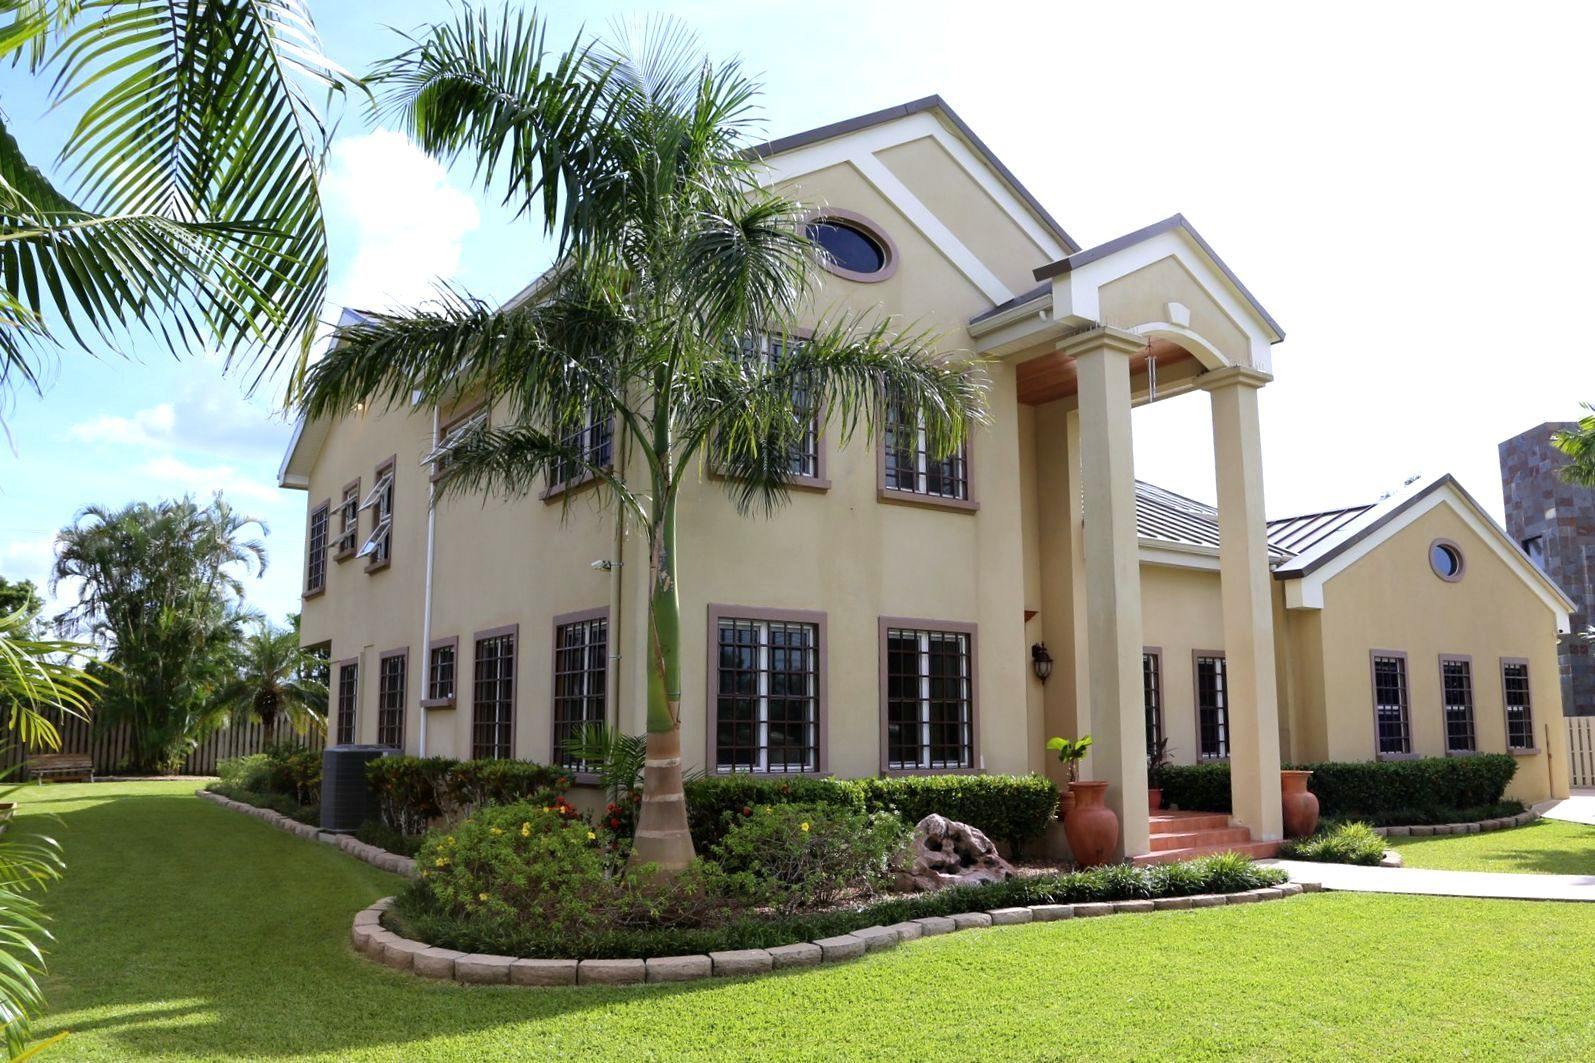 Single Family Home for Sale at Belmopan Estate in Orchid Gardens Belmopan, Cayo Belize